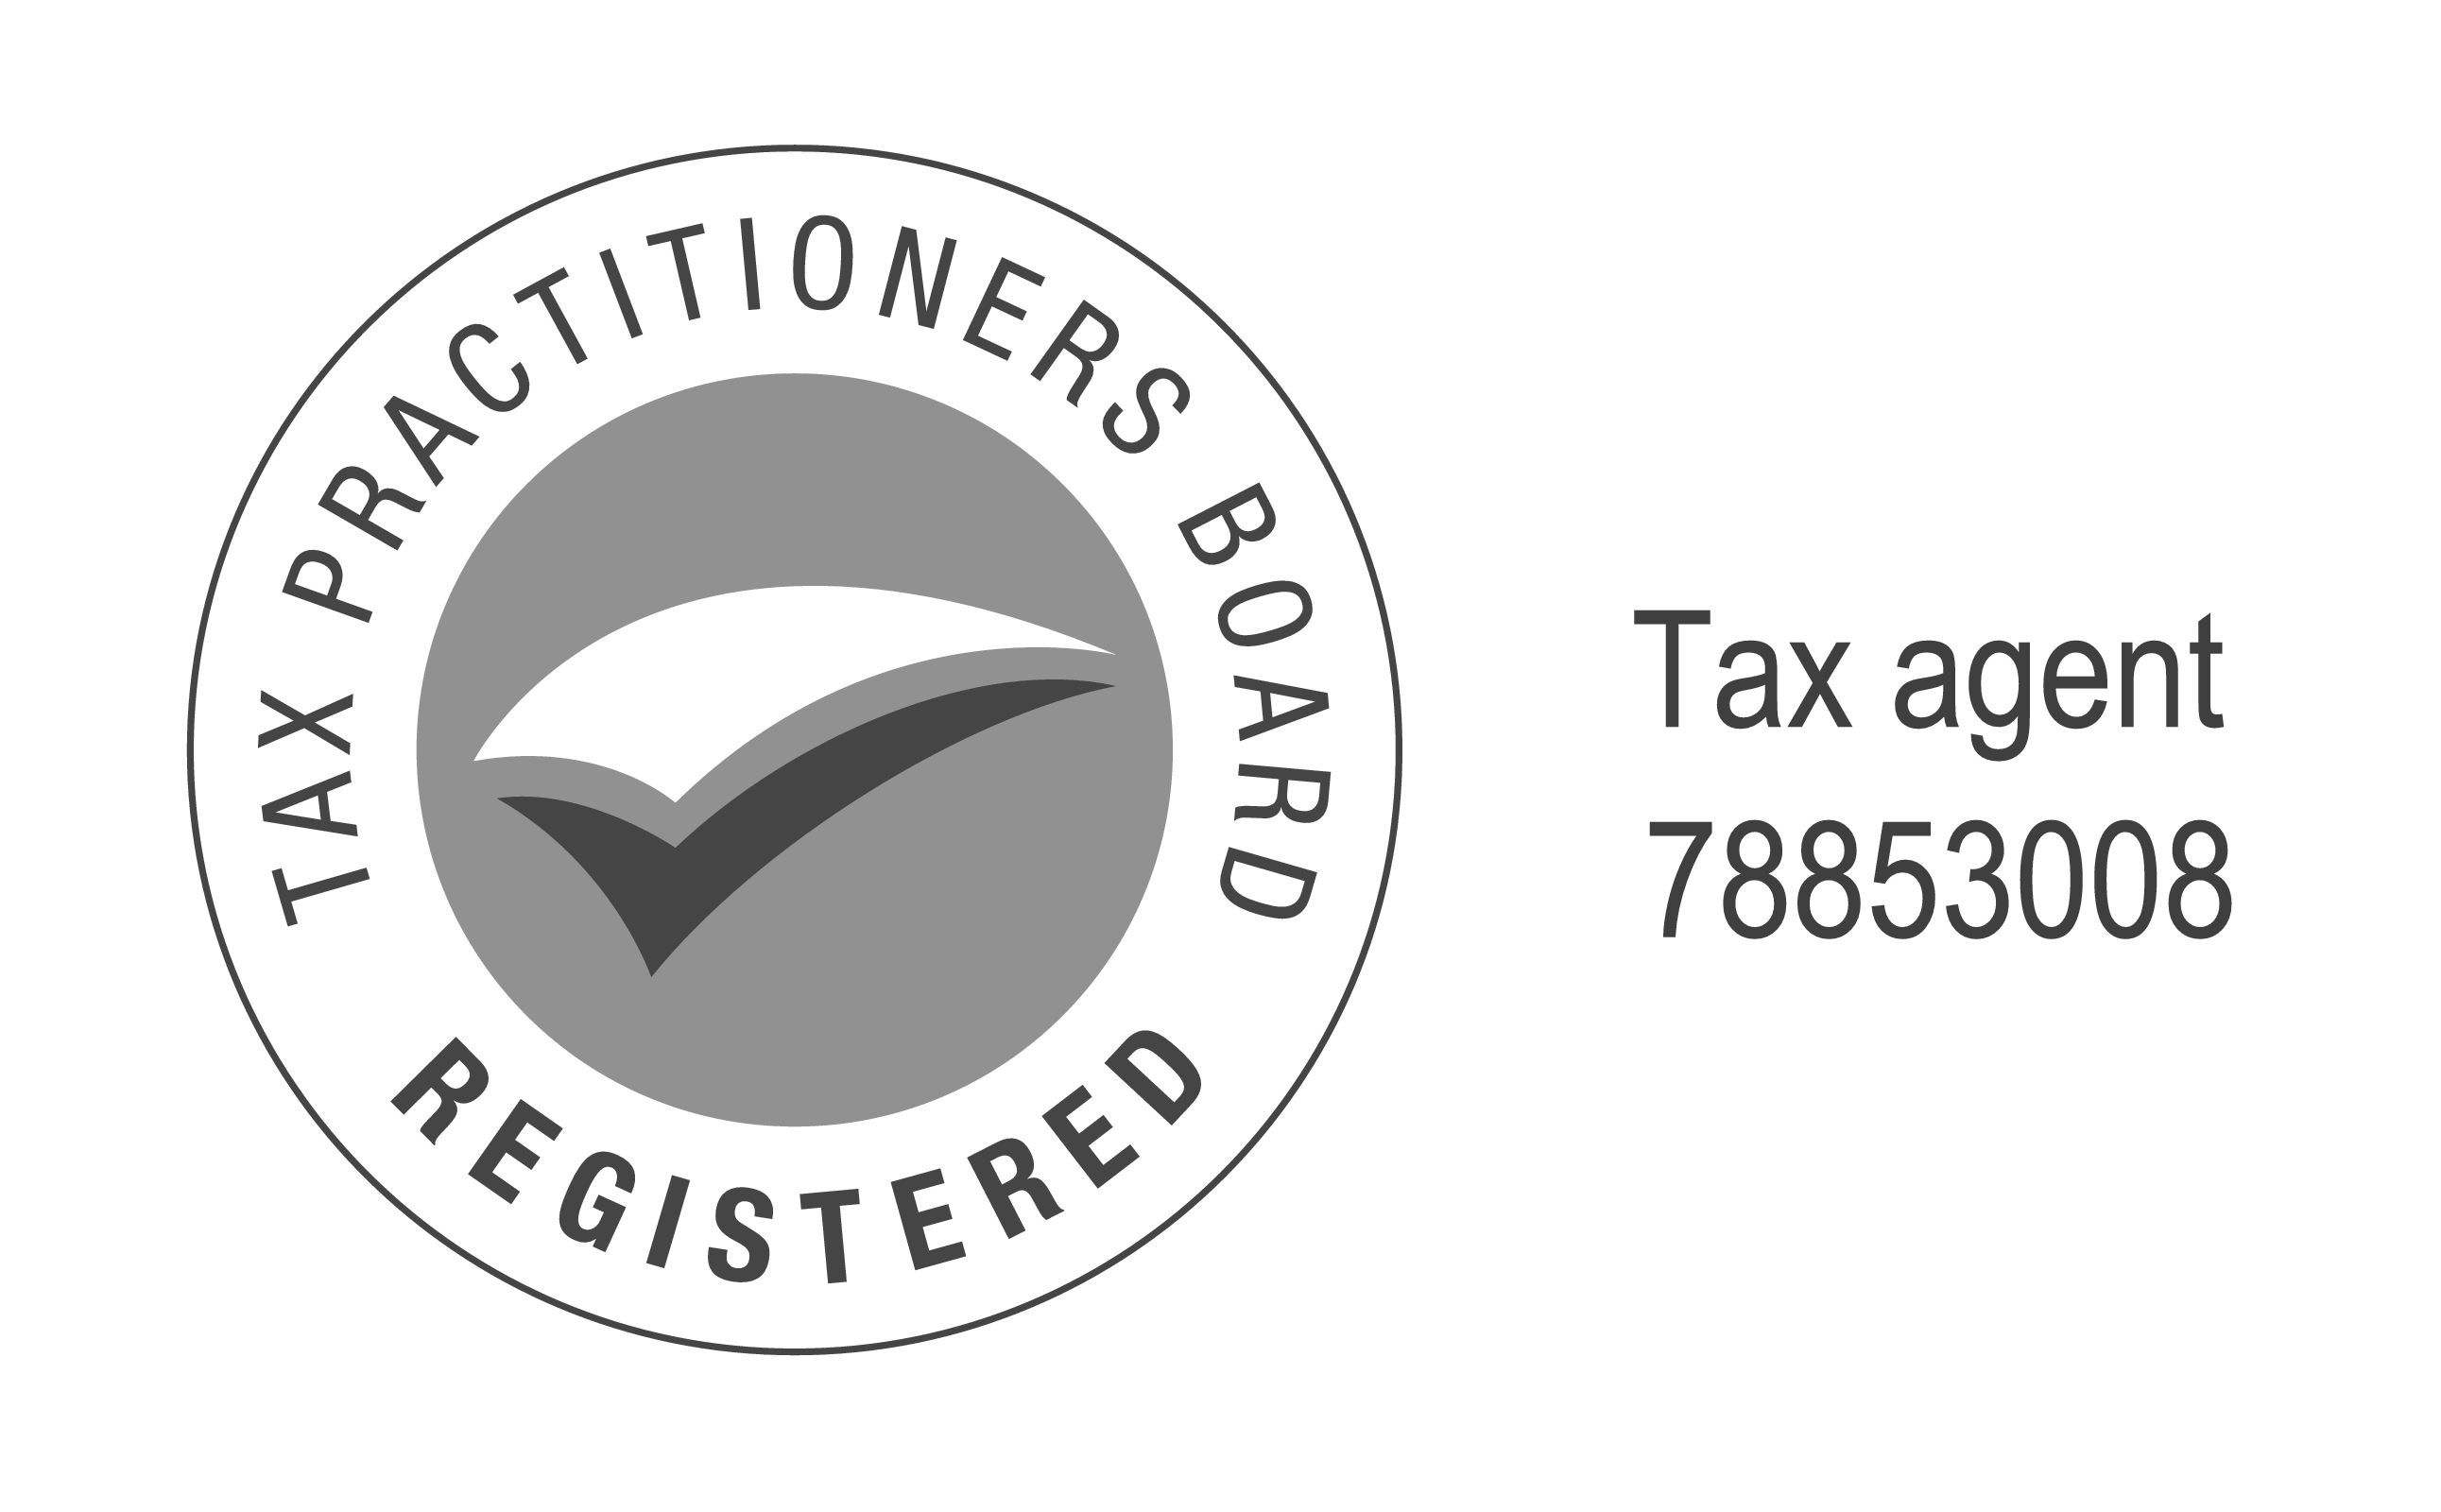 https://adviceco.com.au/wp-content/uploads/sites/683/2019/10/Tax-practitioner-1.png